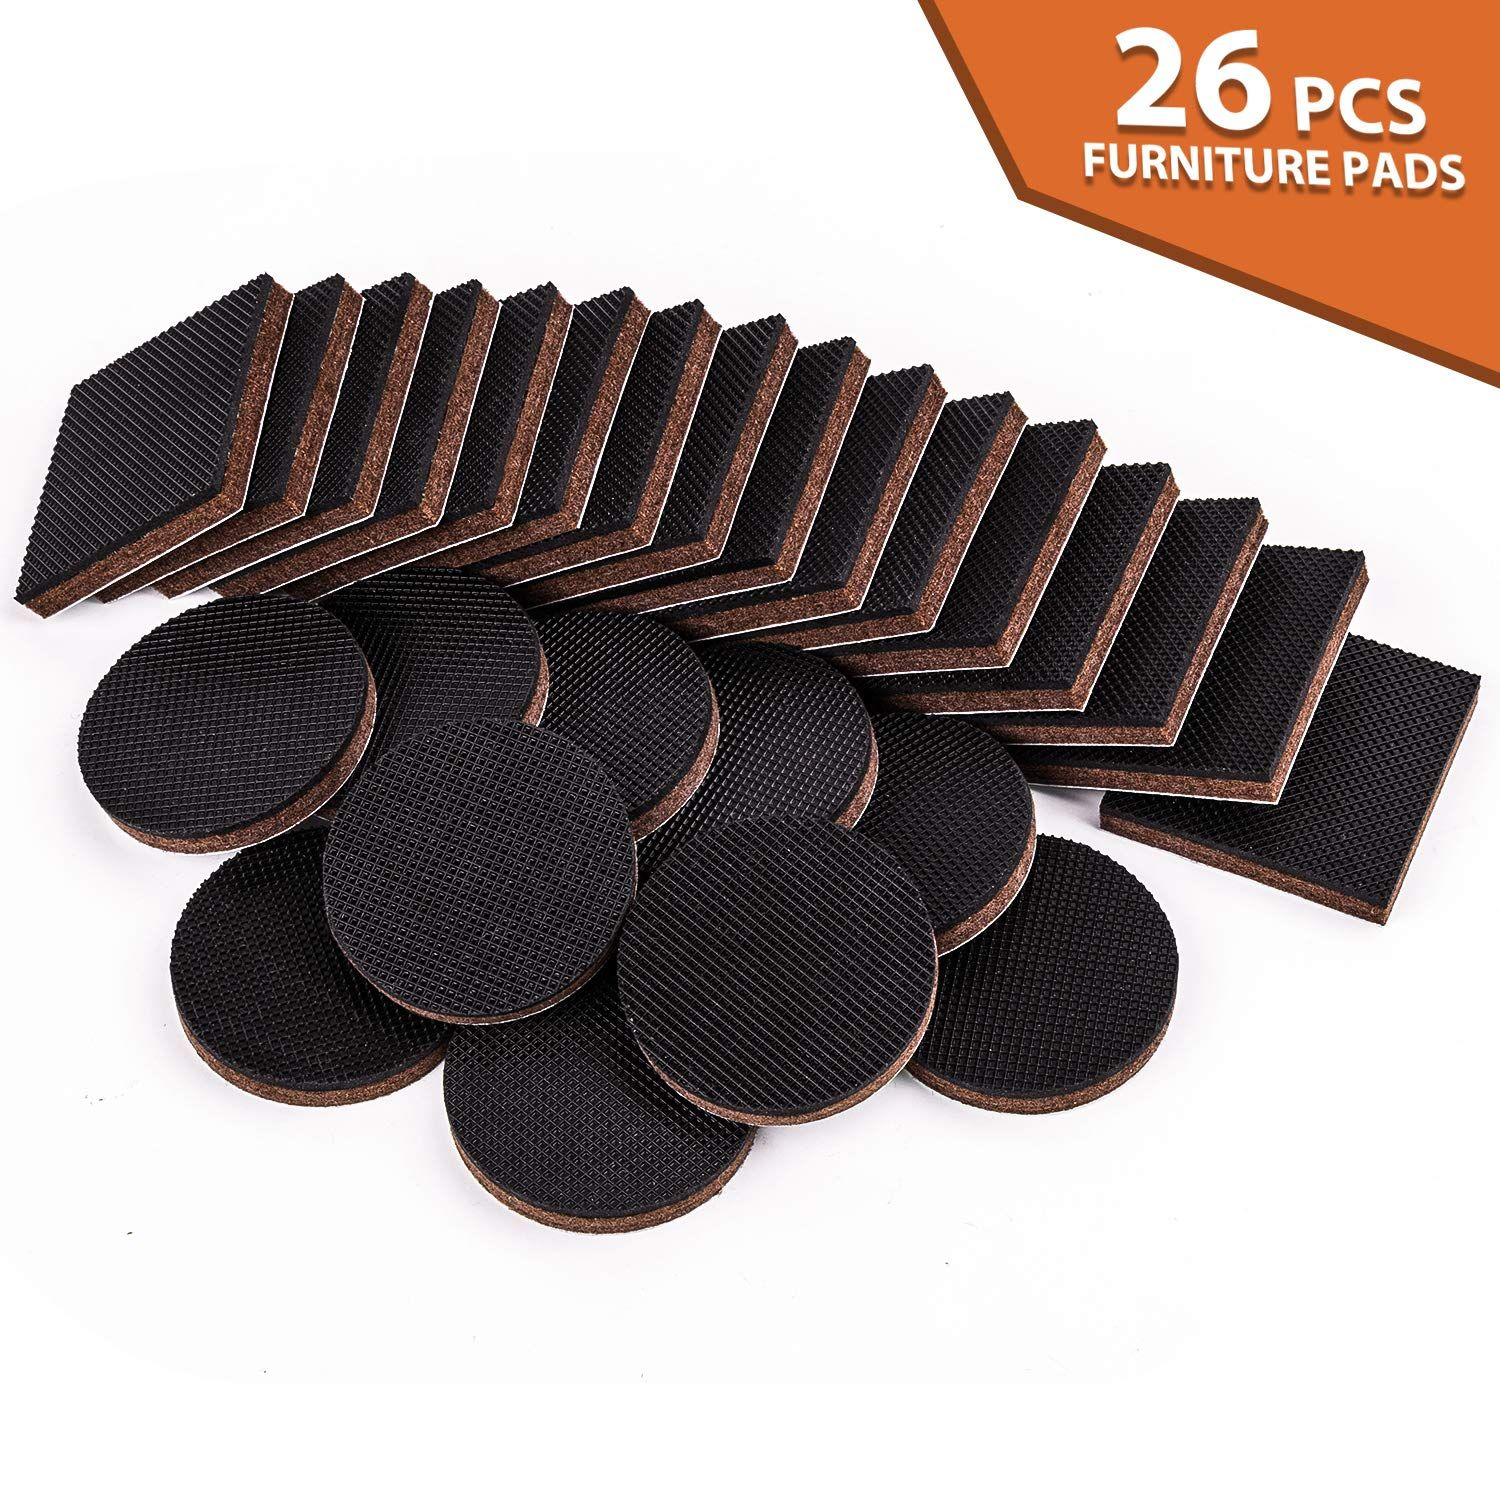 Non Slip Furniture Pads 26pcs Rubber Furniture Grippers Self Adhesive Anti Skid Furniture Pads Furniture Fl Furniture Pads Furniture Grippers Skid Furniture